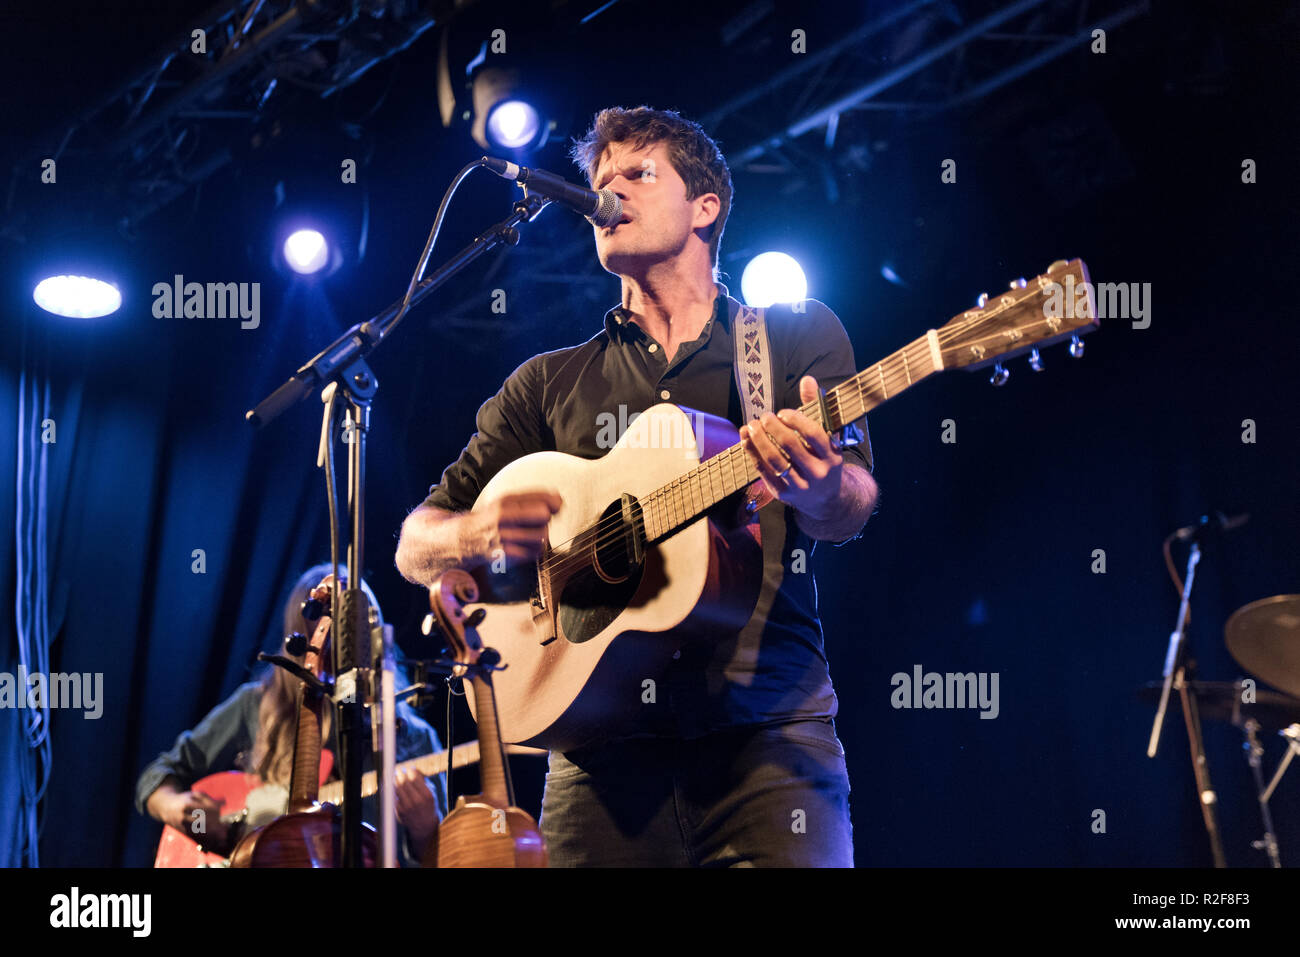 Folk-rock musician Seth Lakeman and his band in concert at Holmfirth Picturedrome, West Yorkshire, 17th November 2108 - Stock Image